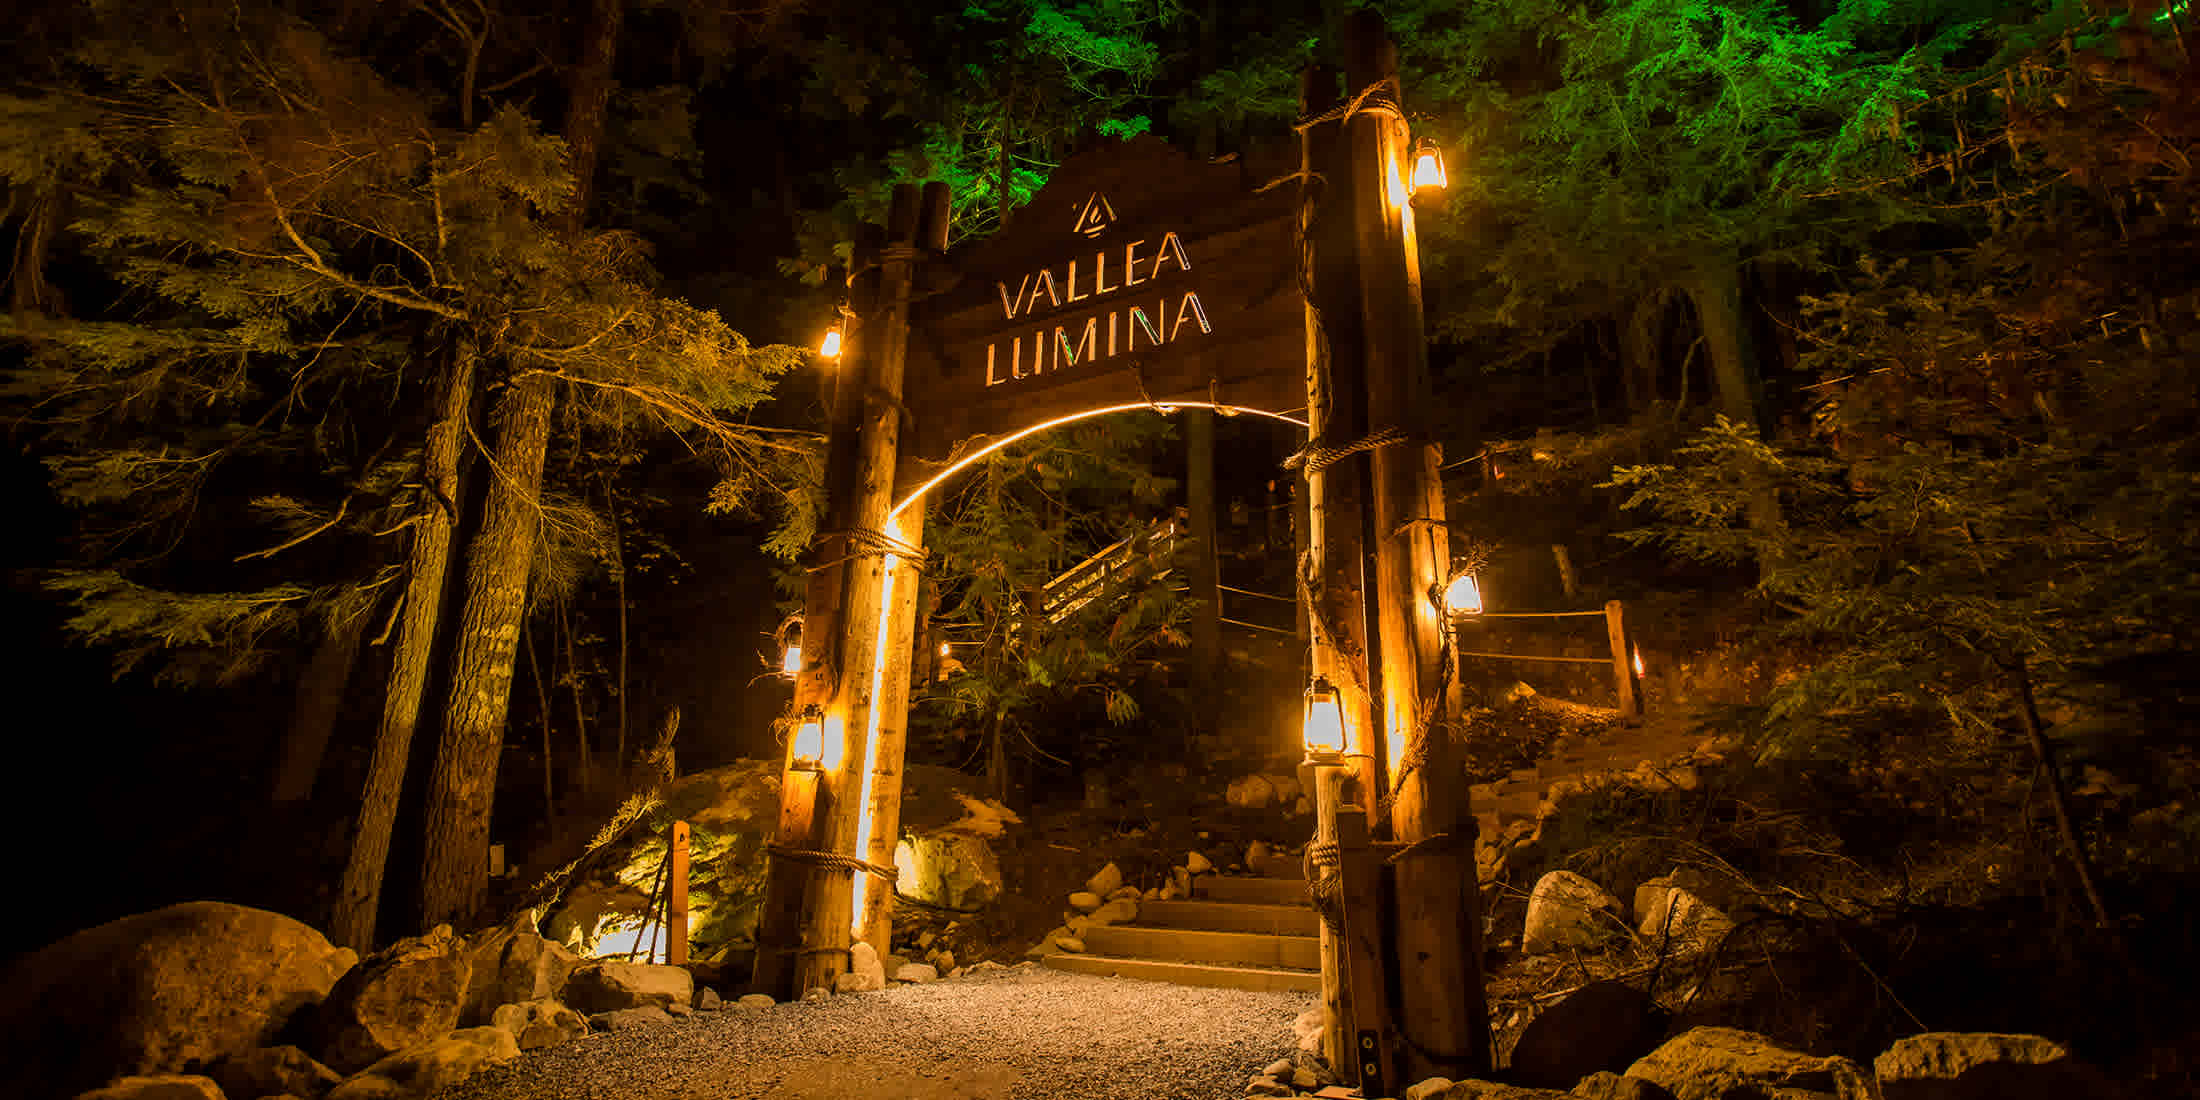 Vallea Lumina Whistler Light Show by Moment Factory